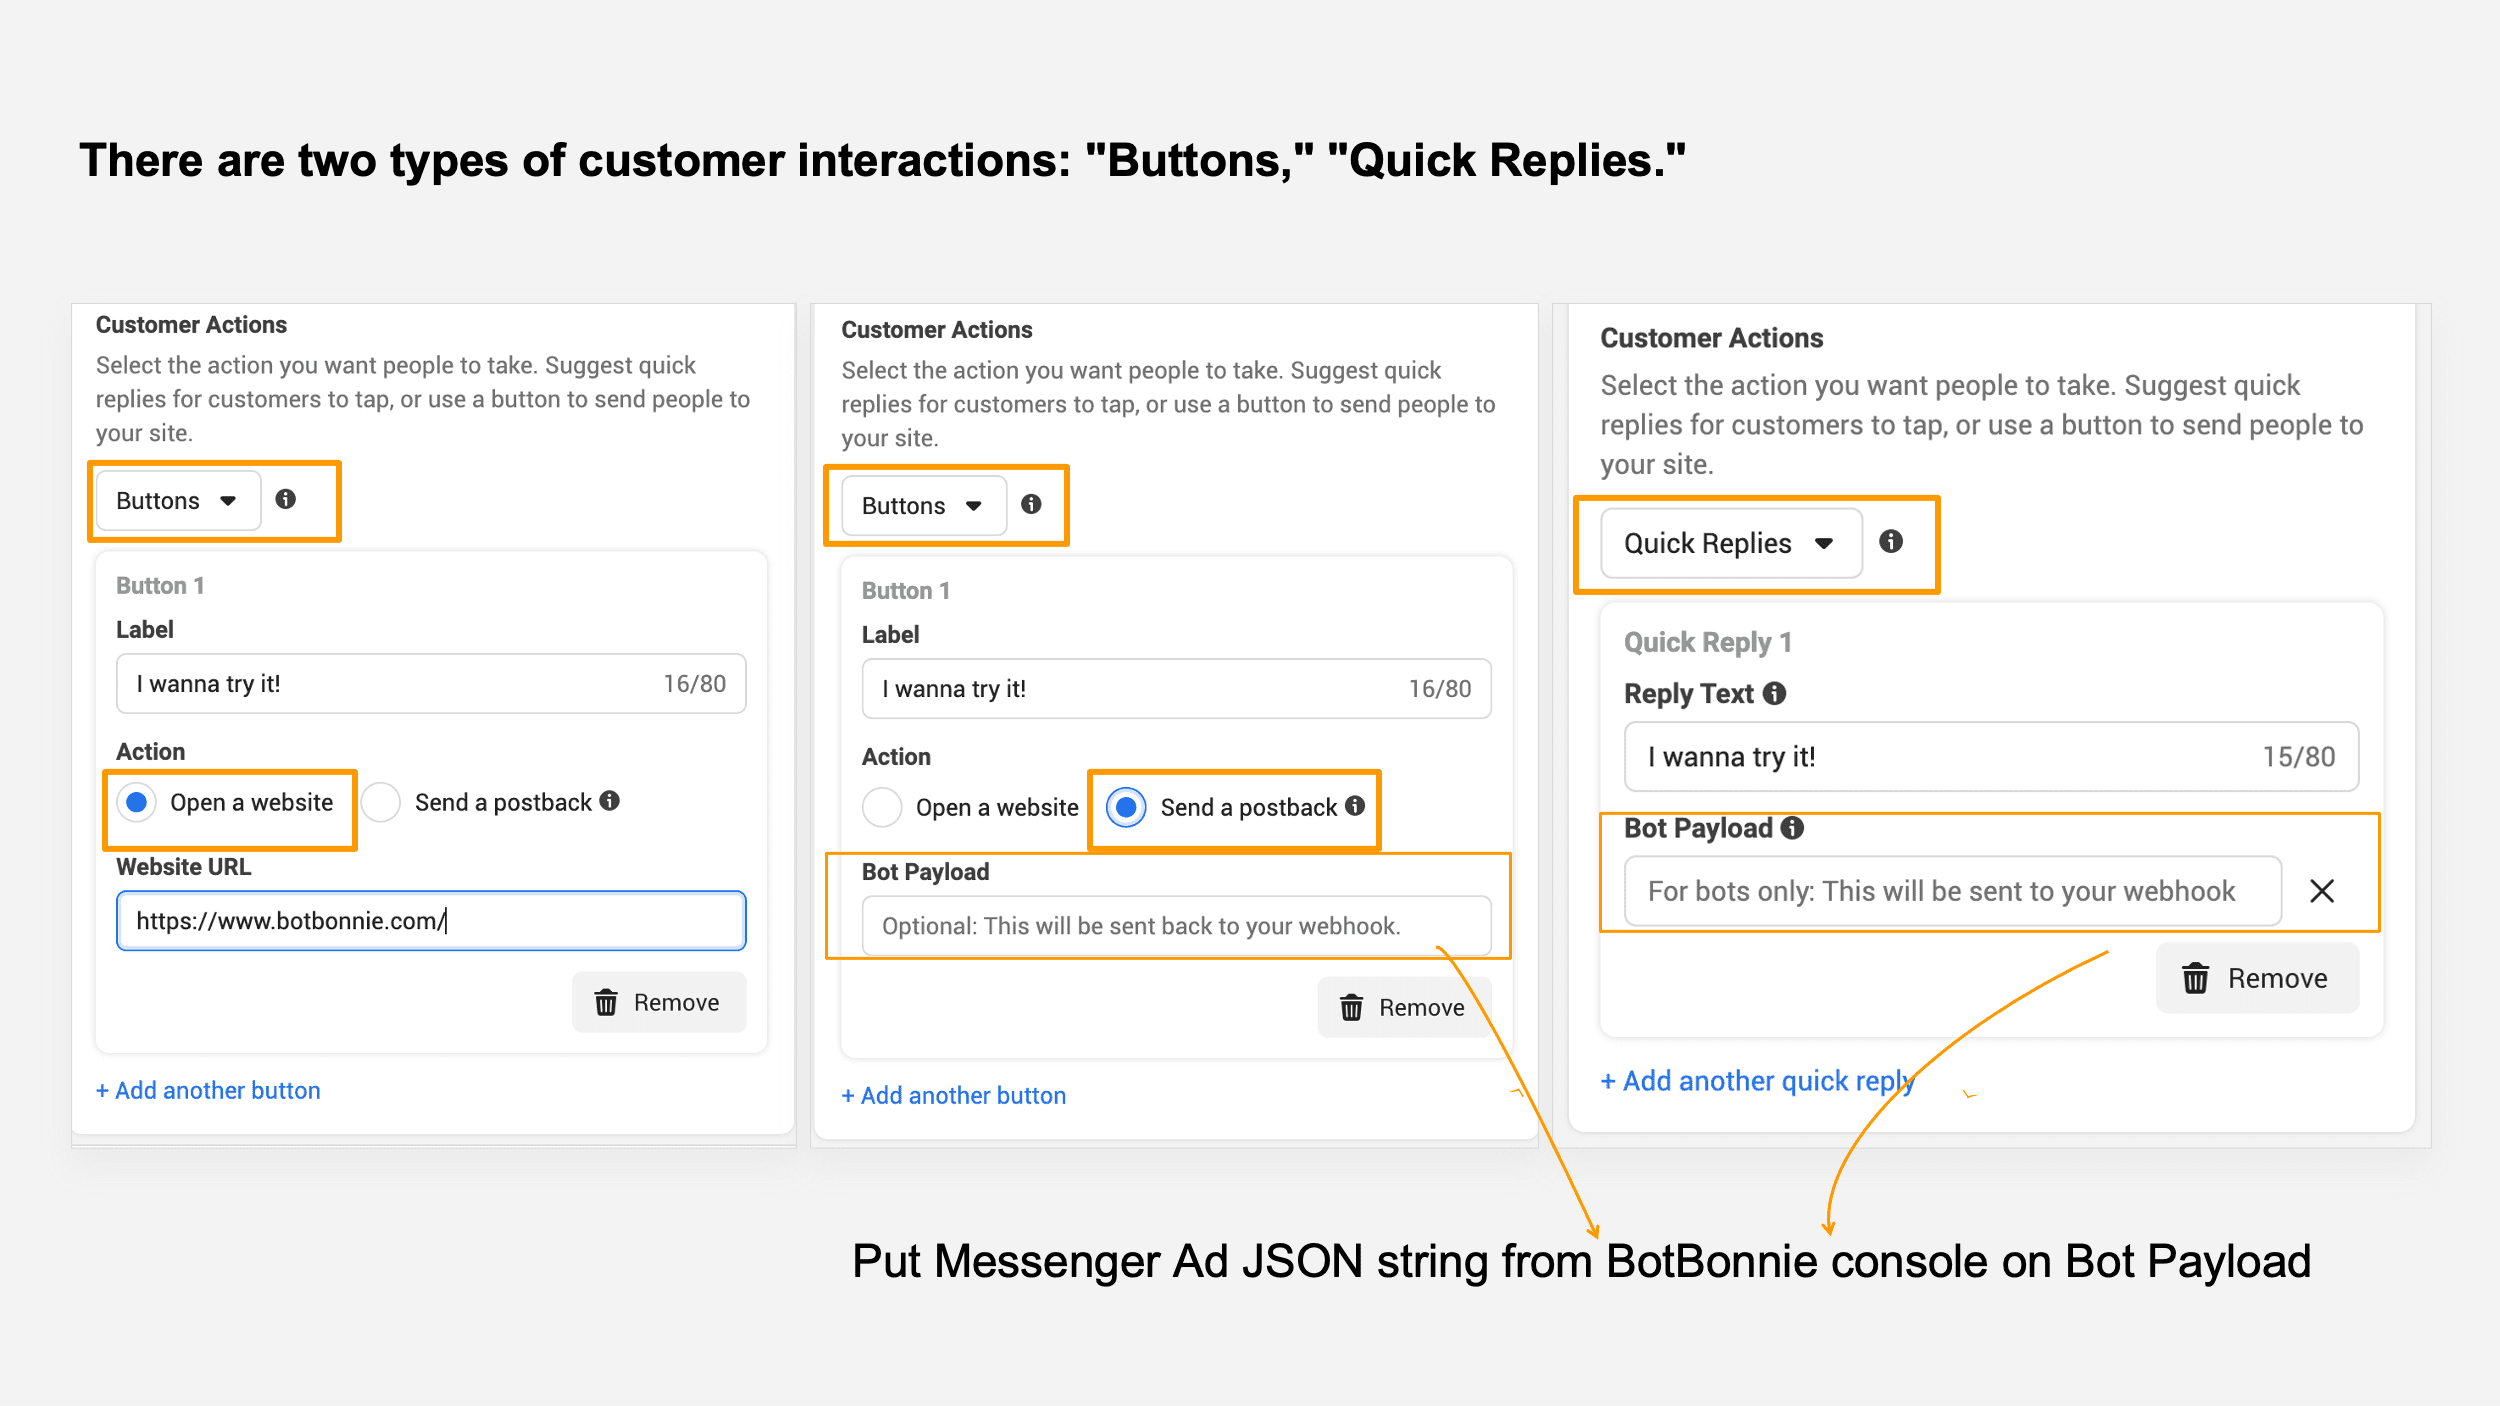 Three ways to interact with customers